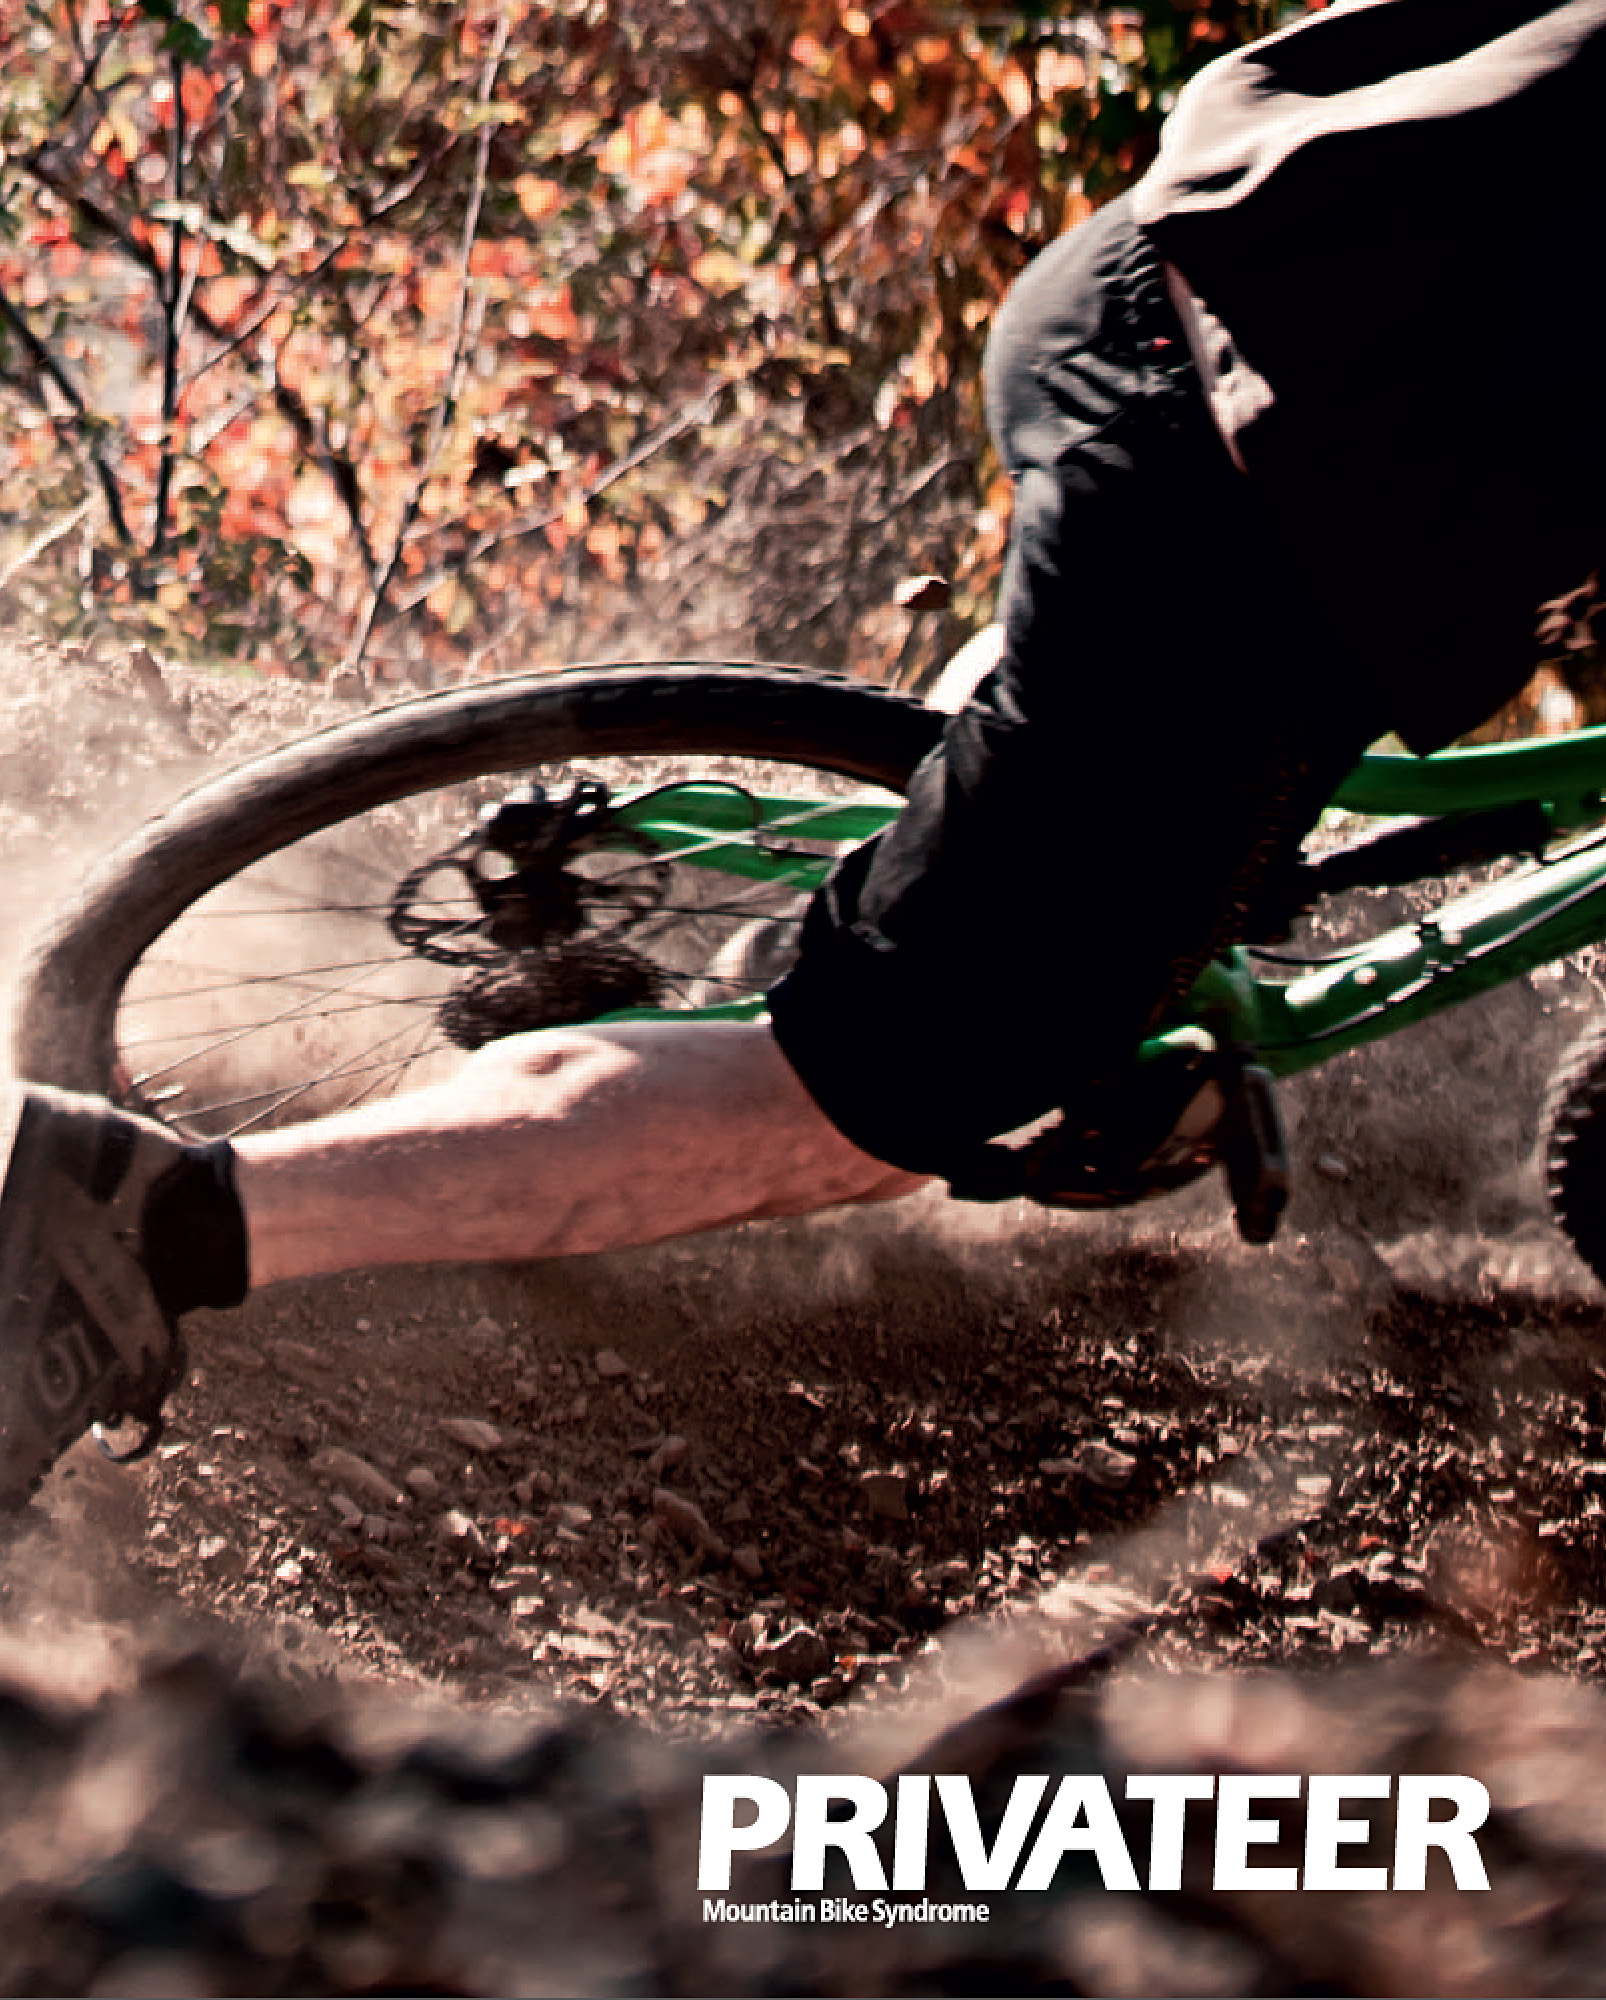 Privateer, 2011